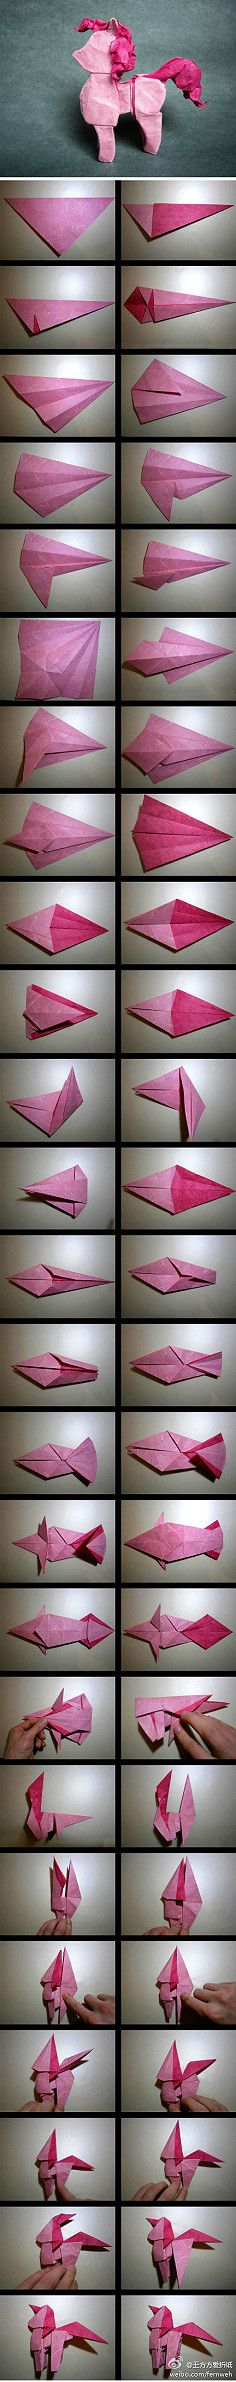 I want to make this but I'm so bad at origami